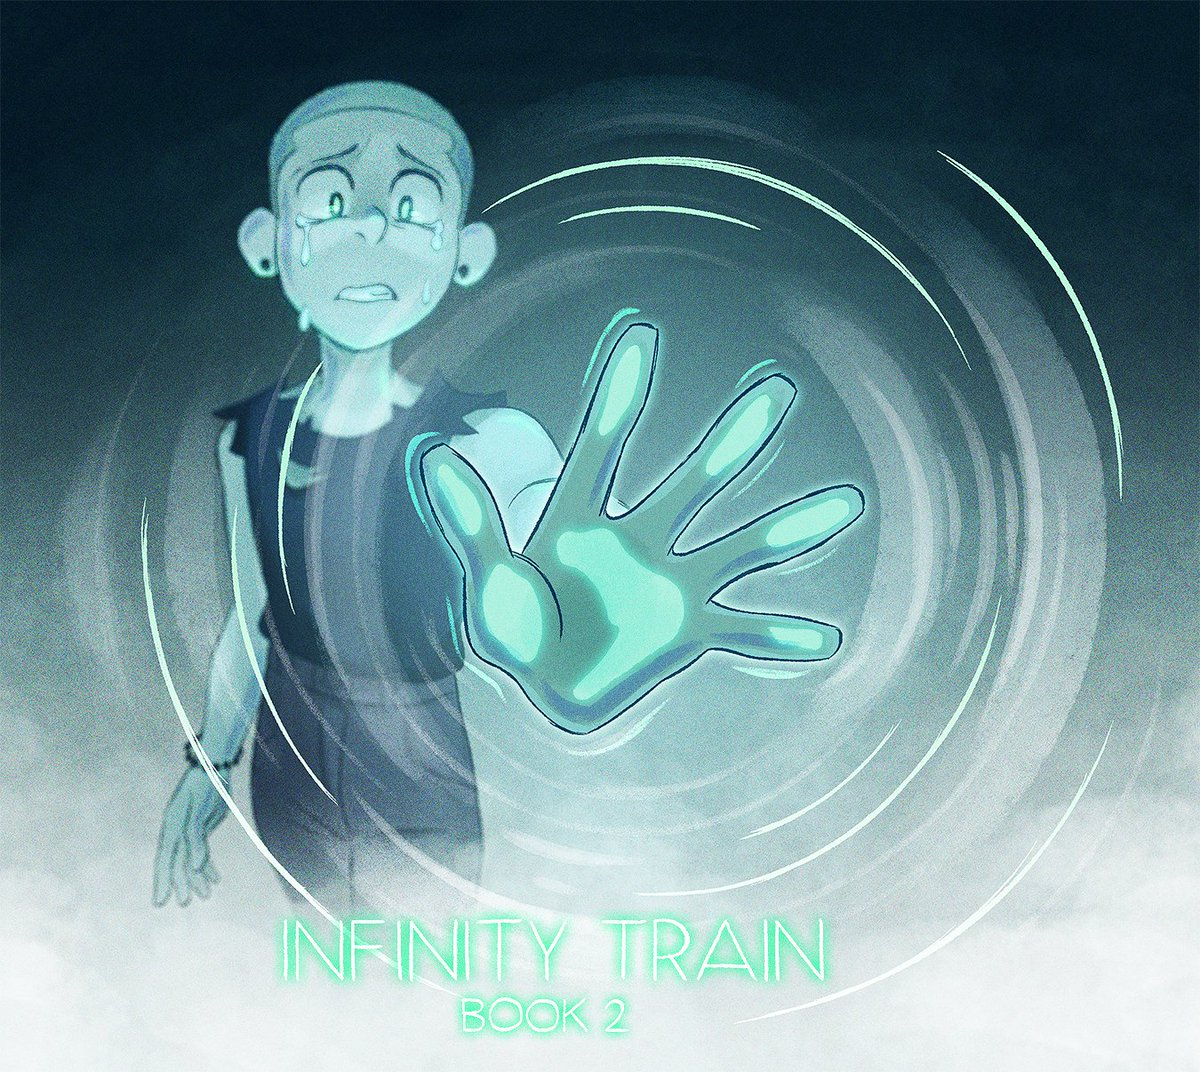 Wanted to animate this but ran outta time 😭 anyway, please watch the #InfinityTrain Book 2 finale tonight!!! The Tape Car written by @heyjustin boarded by @jessiewongg and Jacob Winkler + The Number Car written by @AlexanderHorab boarded by @Spinadoodles and @peroroh